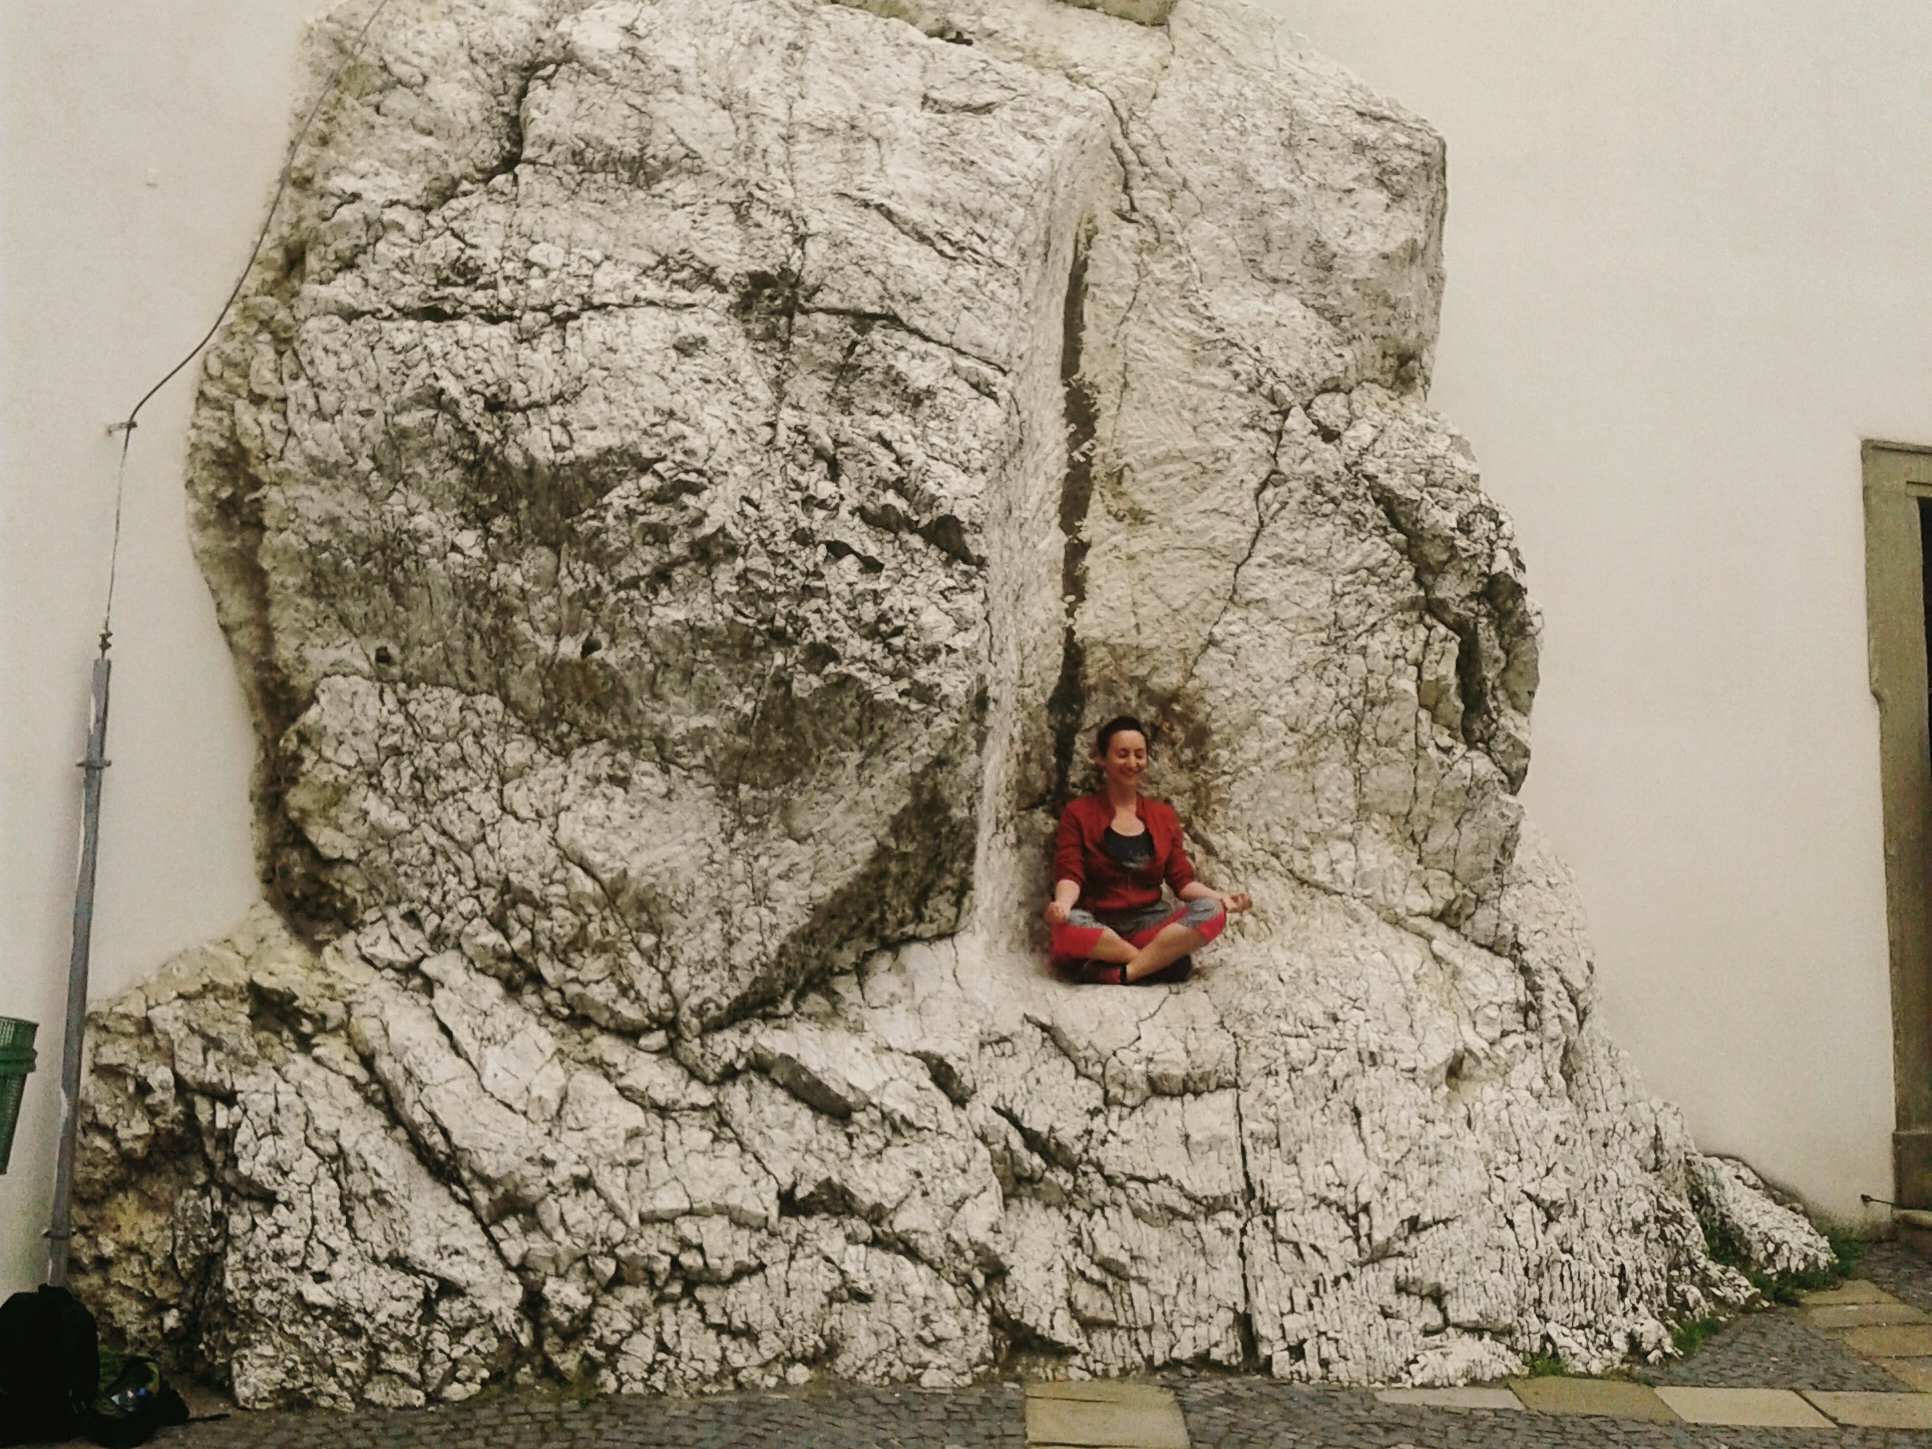 rhiaro in a red jacket sits cross-legged on a little shelf in a big rock